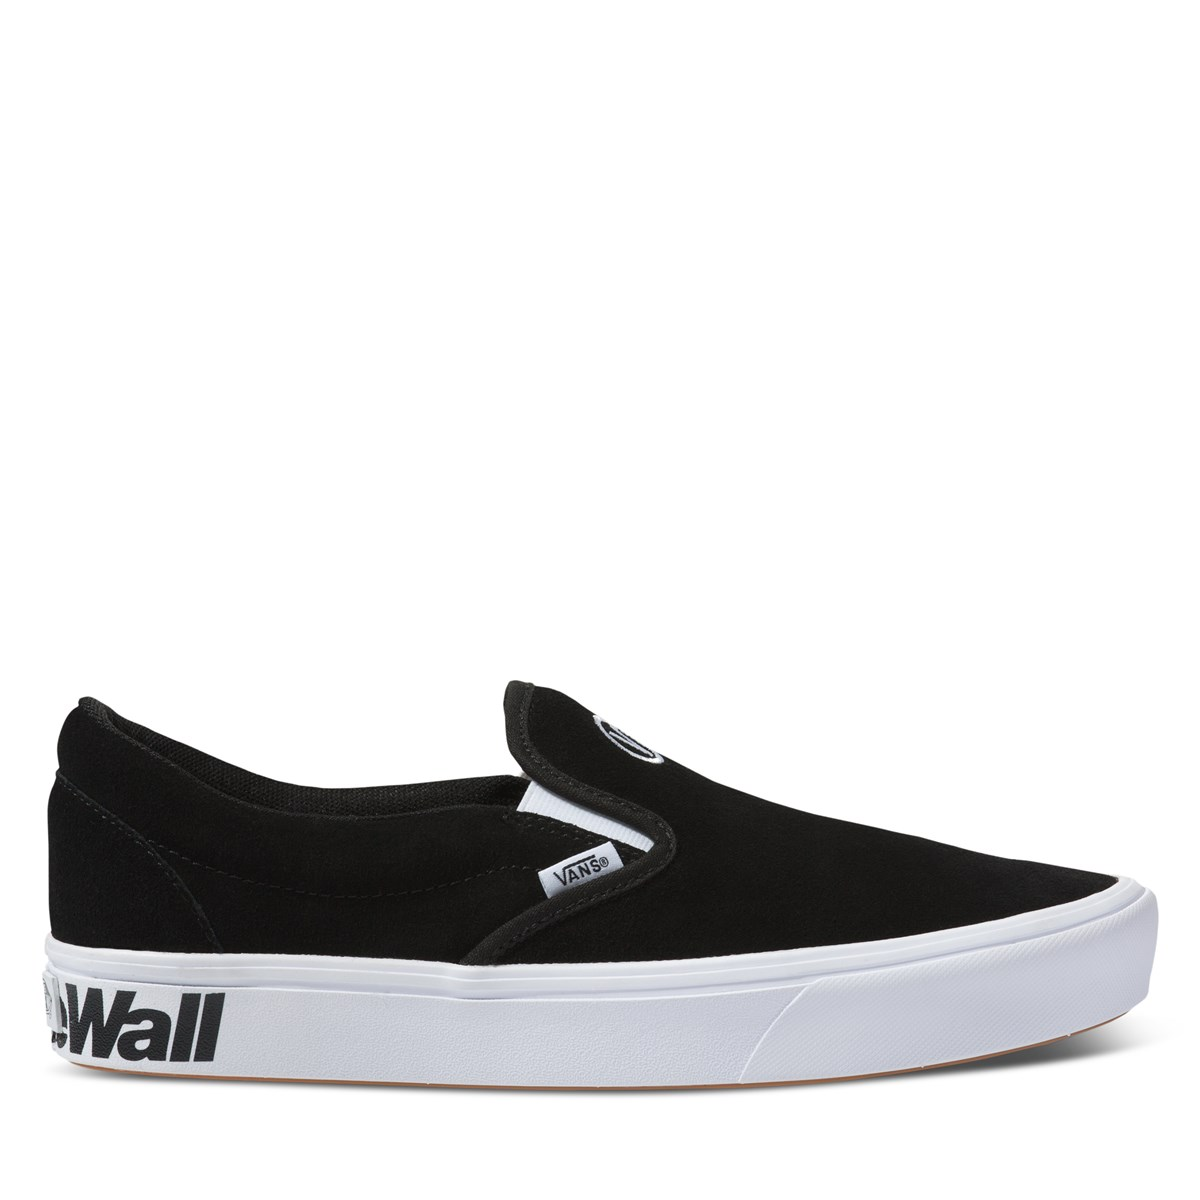 Men's Comfycush Slip-Ons in Black